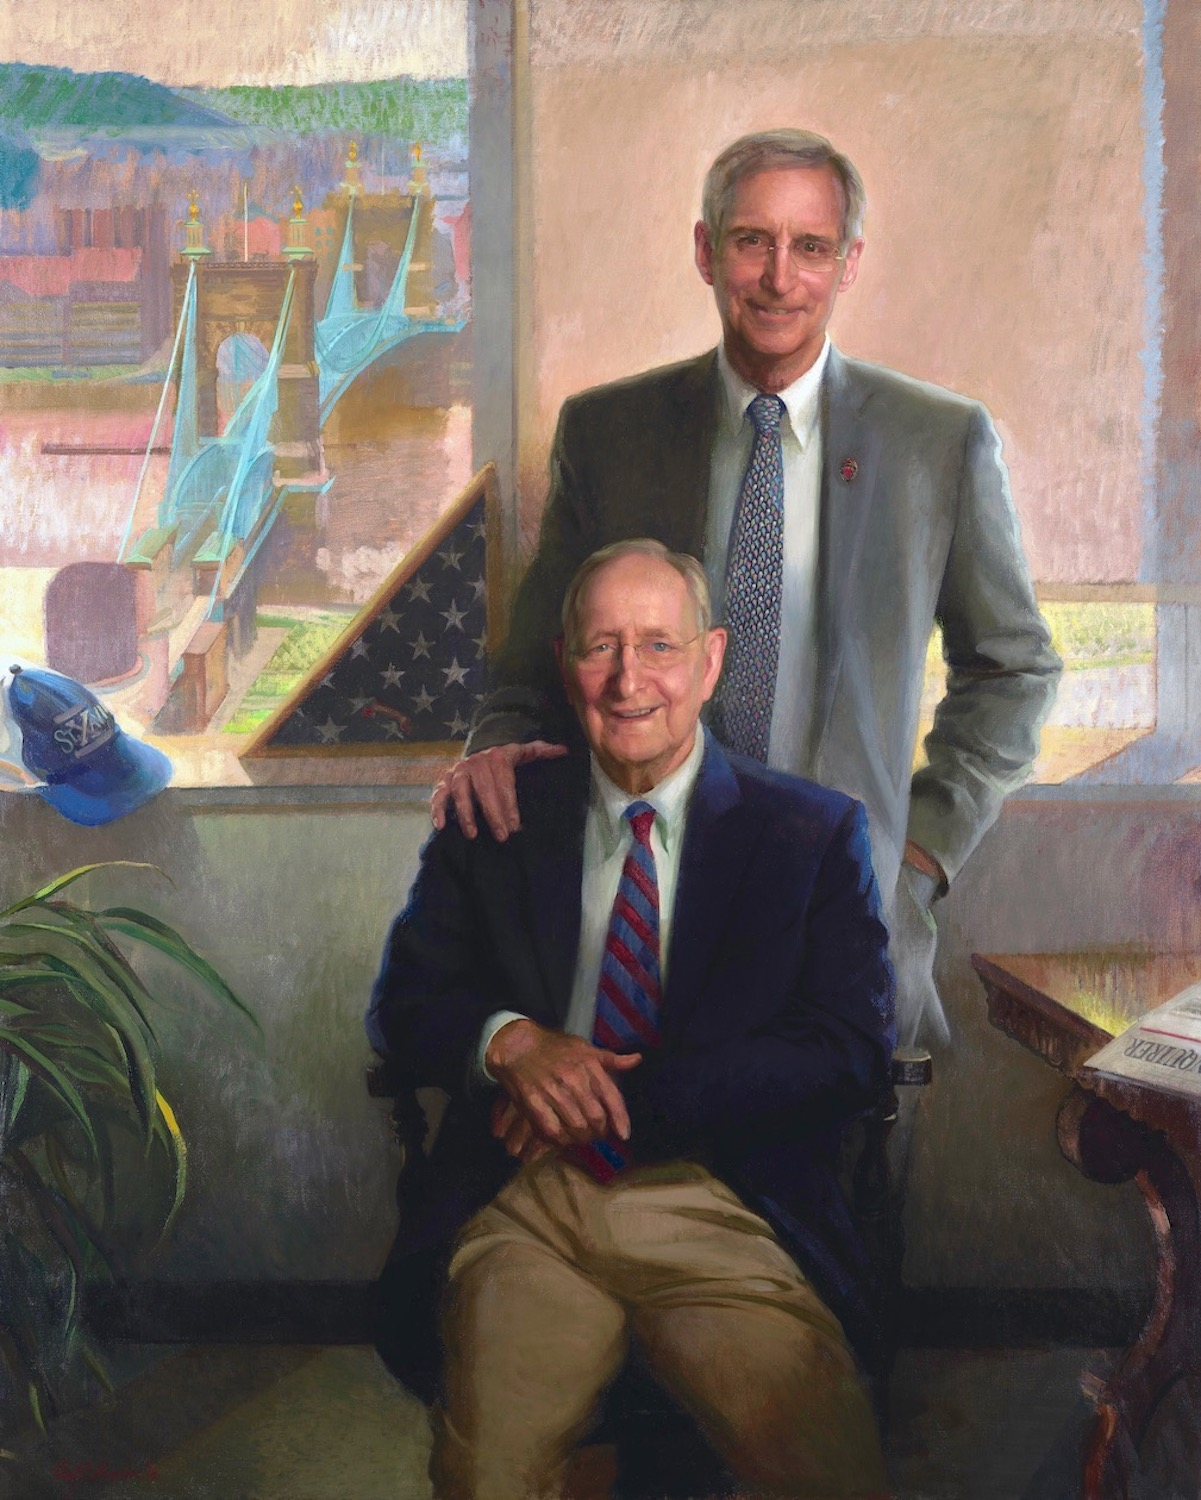 """William Keating Sr. & William Keating Jr., 72"""" x 45"""", oil on linen canvas, KMK Law collection"""